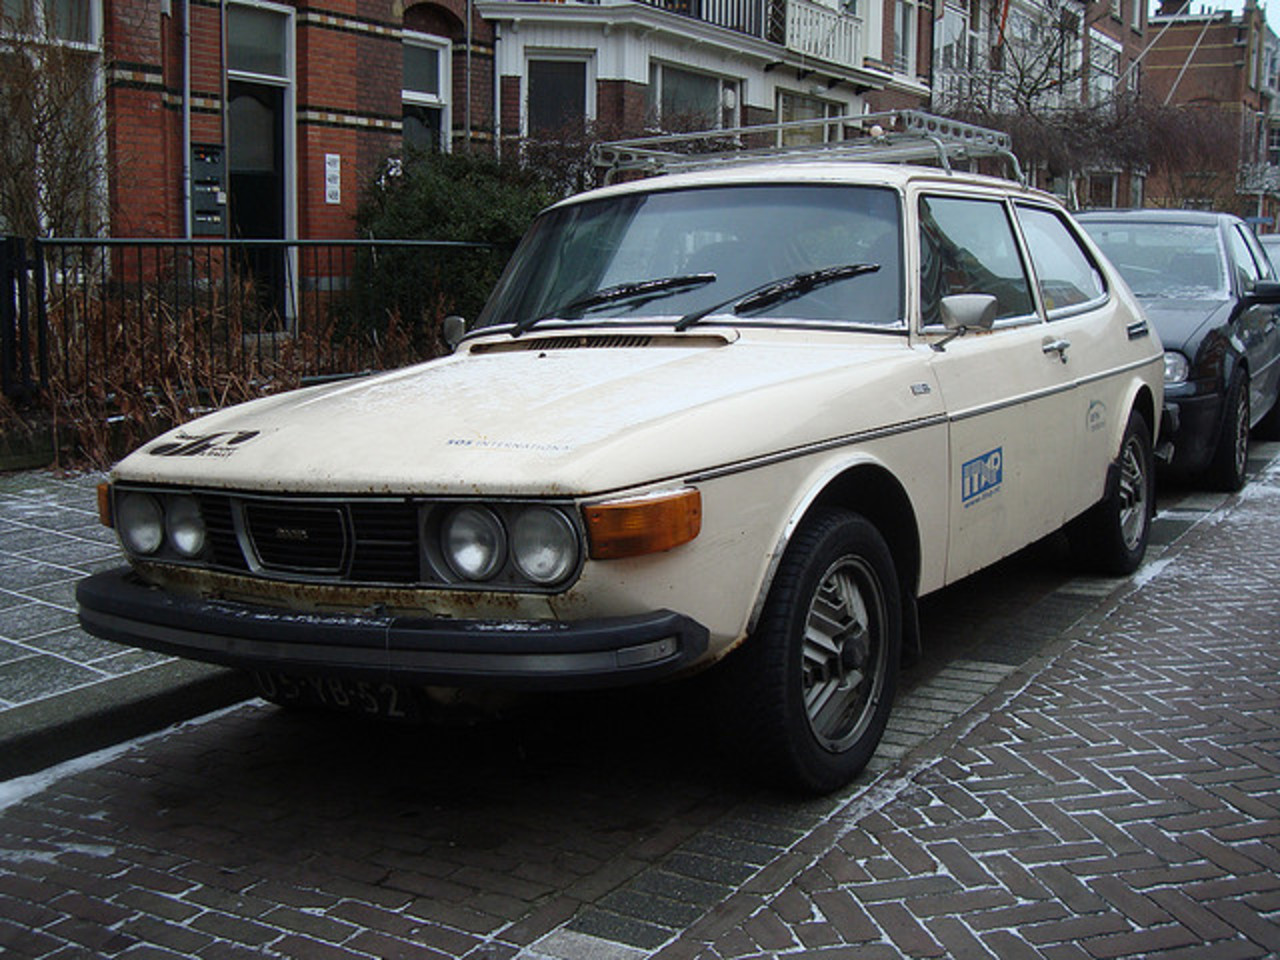 1975 Saab 99 GL (US spec headlights) | Flickr - Photo Sharing!